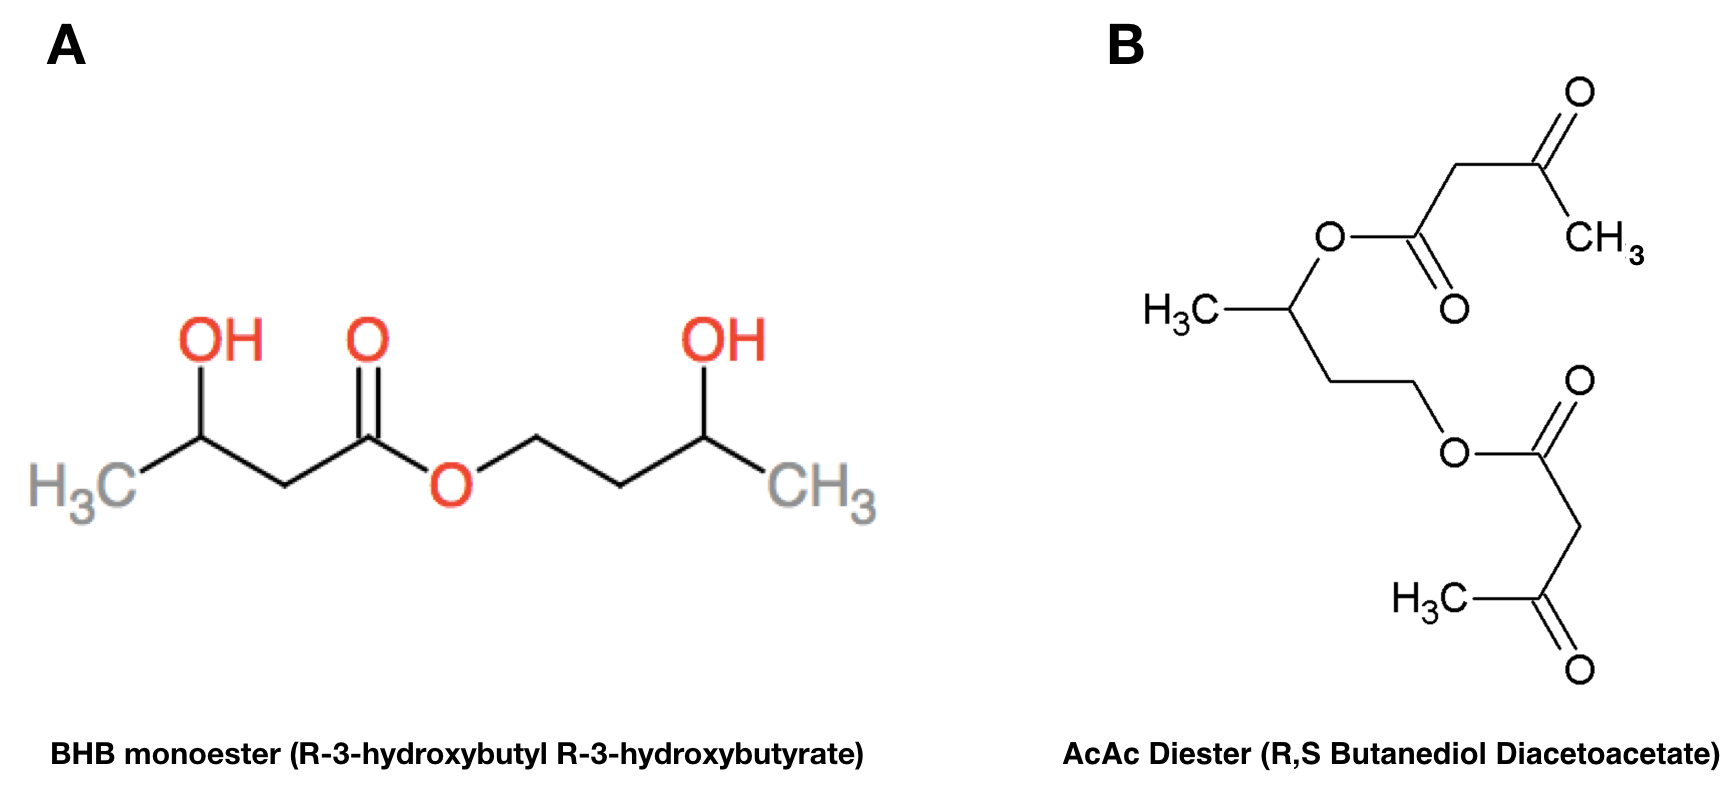 BHB monoester and AcAc diester chemical compounds